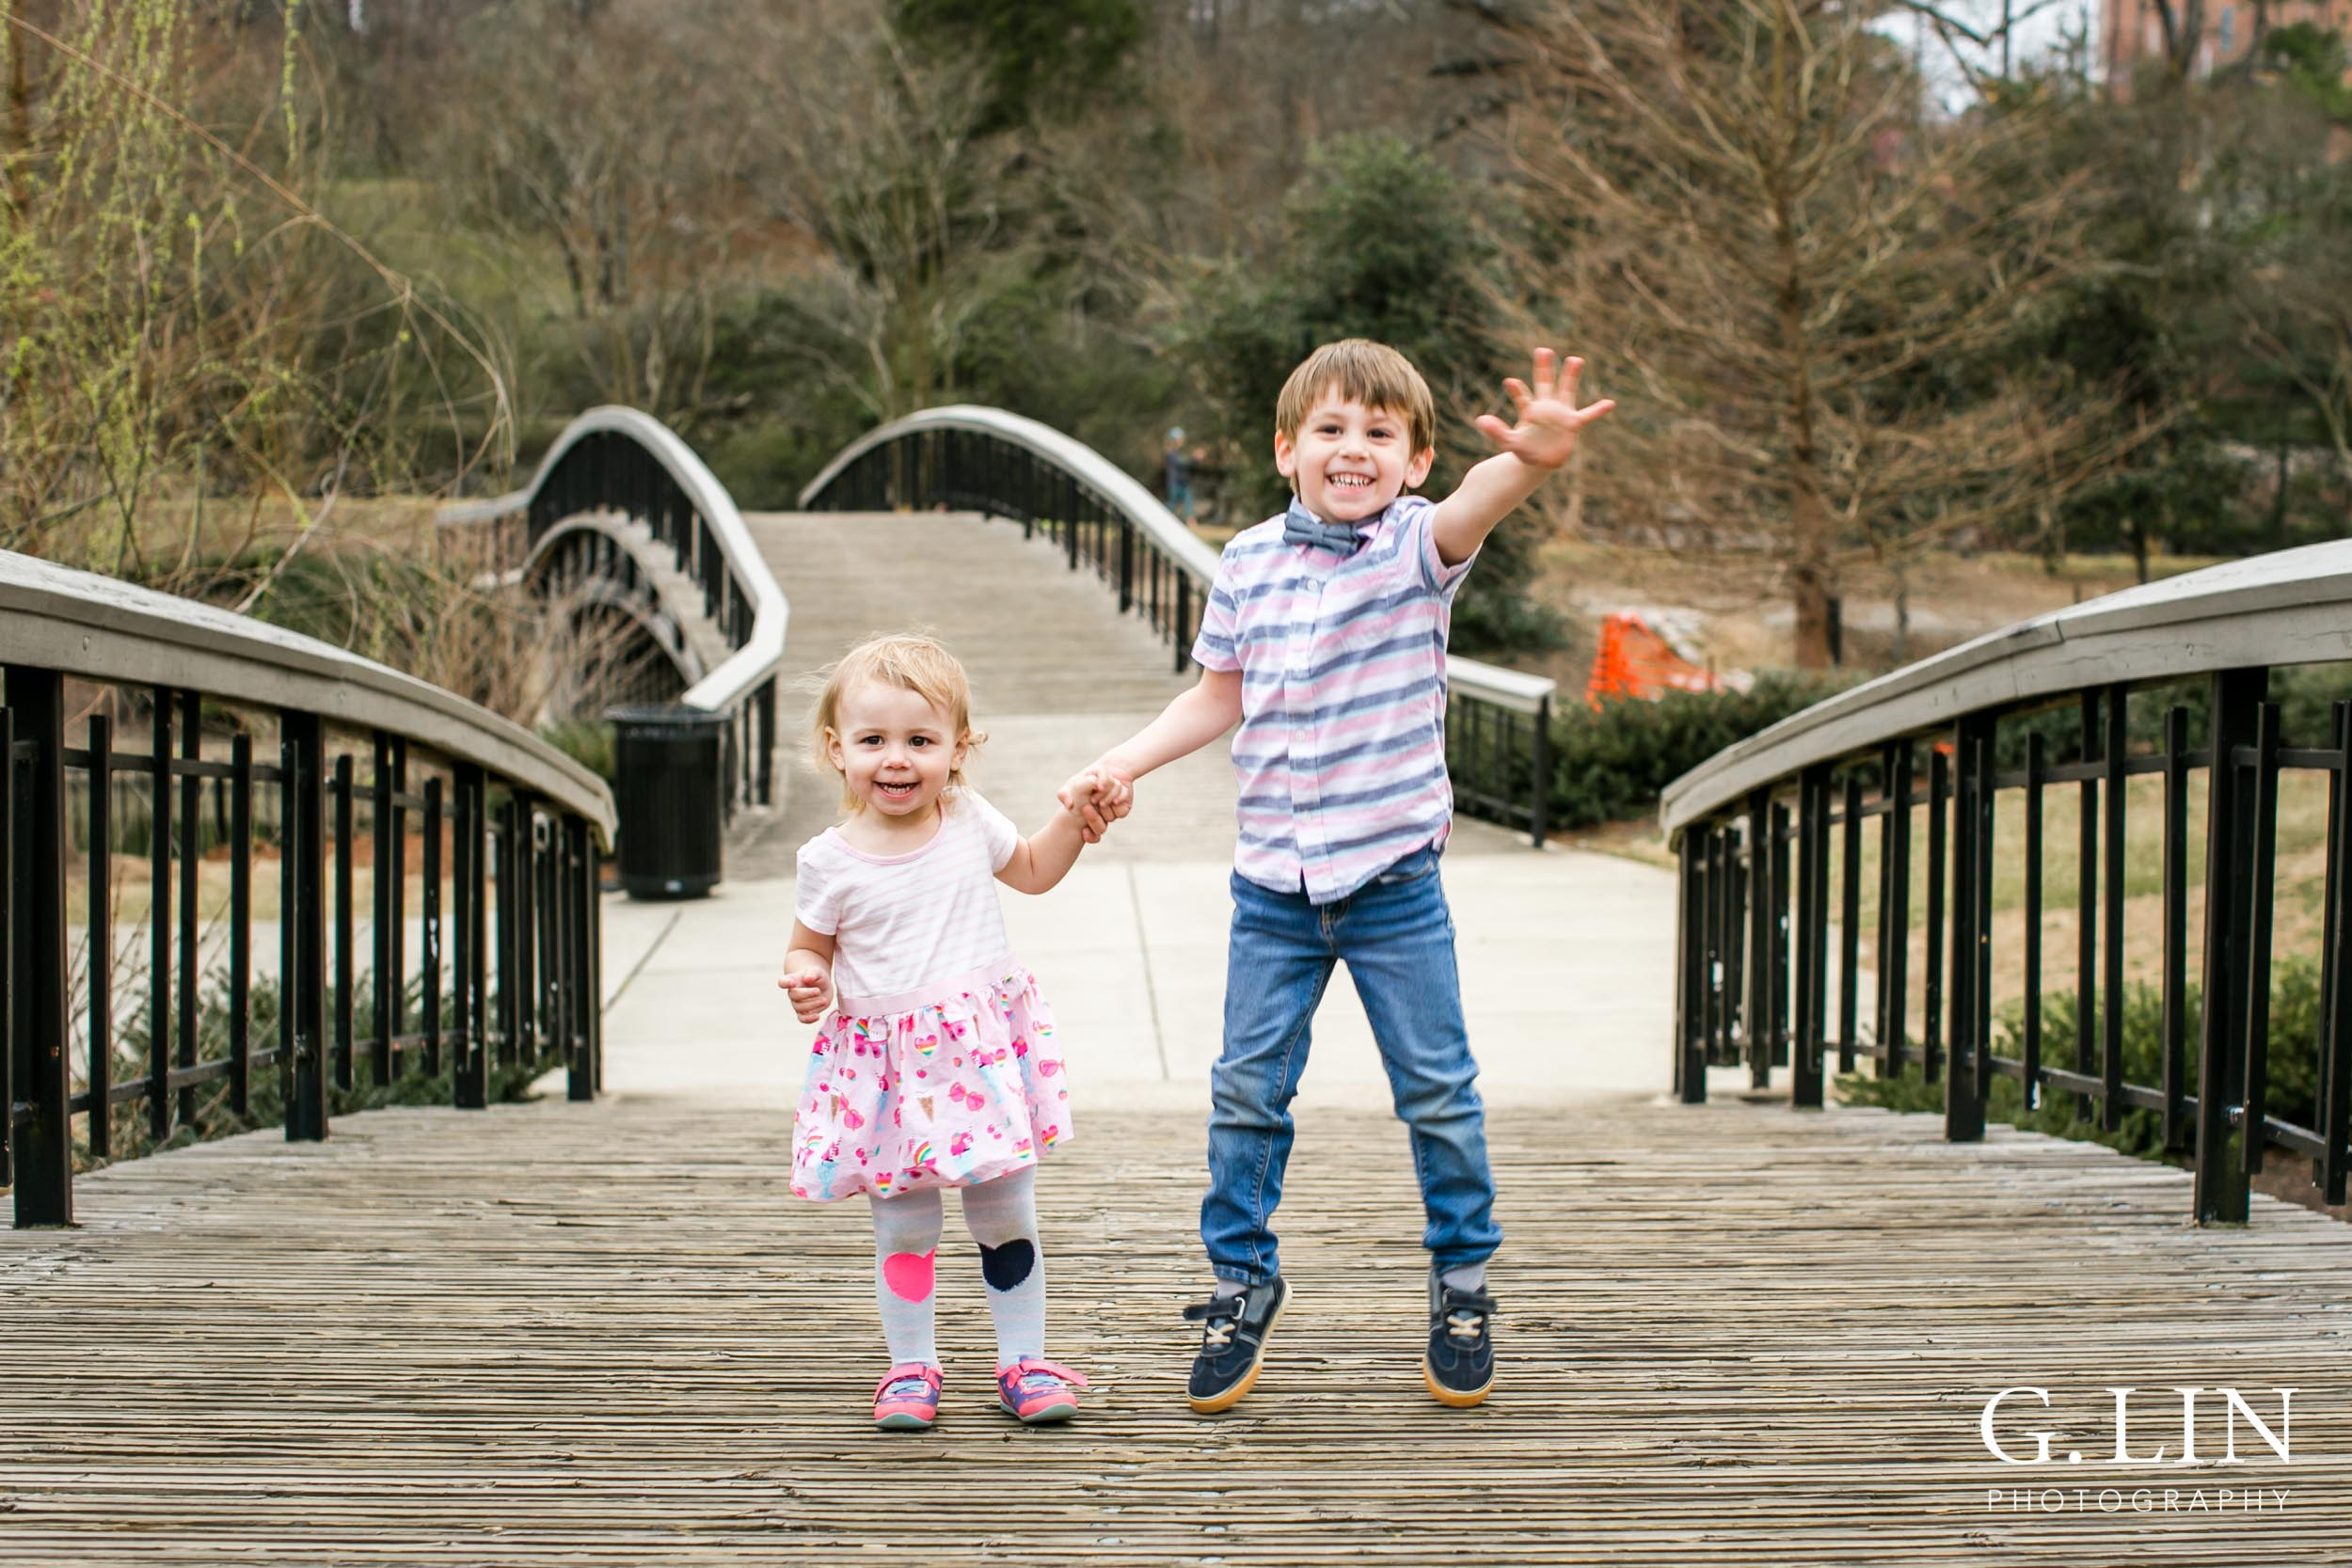 Raleigh Family Photographer | G. Lin Photography | Children holding hands and jumping